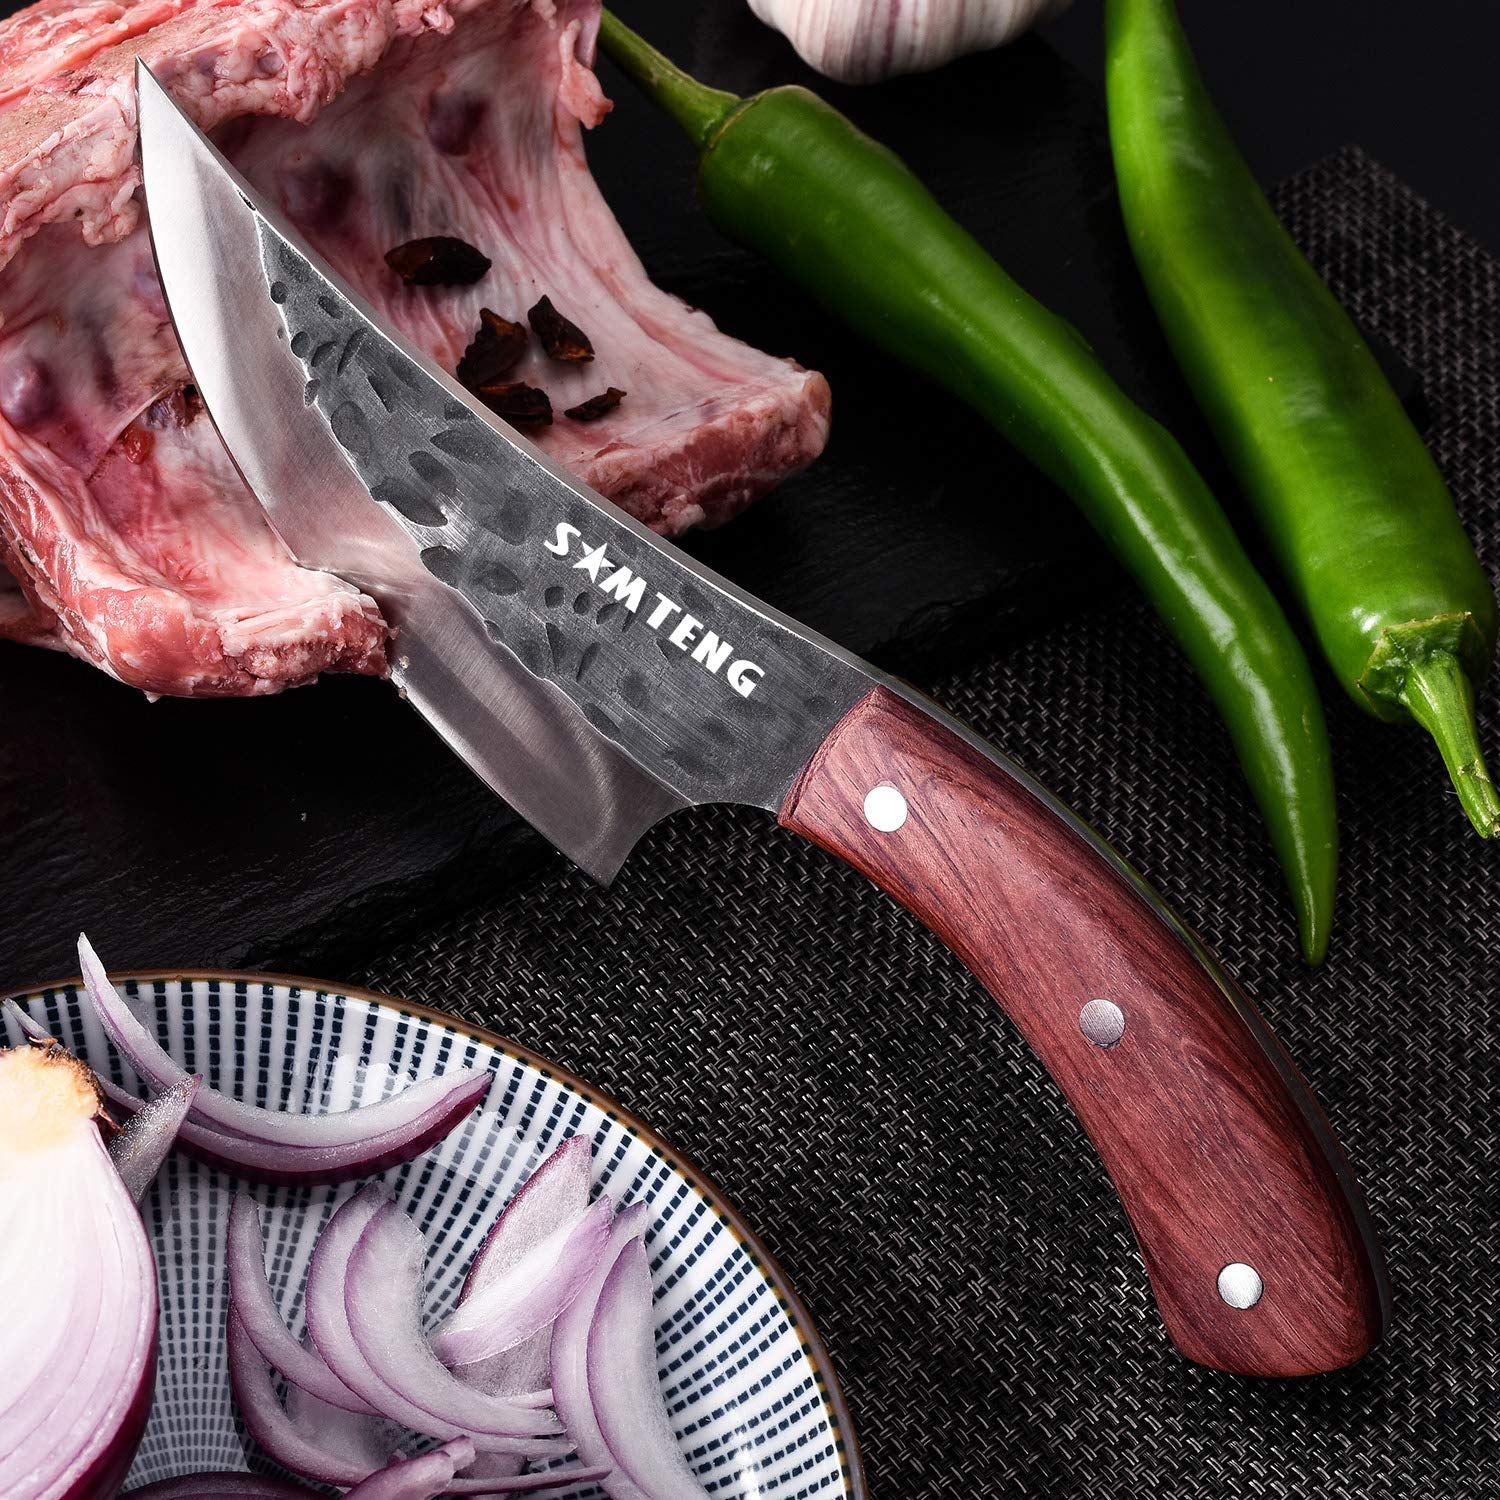 SMTENG Boning Knife 5.5 inch Handmade Forged Hammered kitchen Knife Full tang Sharp Blade Chef Knives Outdoor BBQ Meat Cleaver by SMTENG (Image #6)